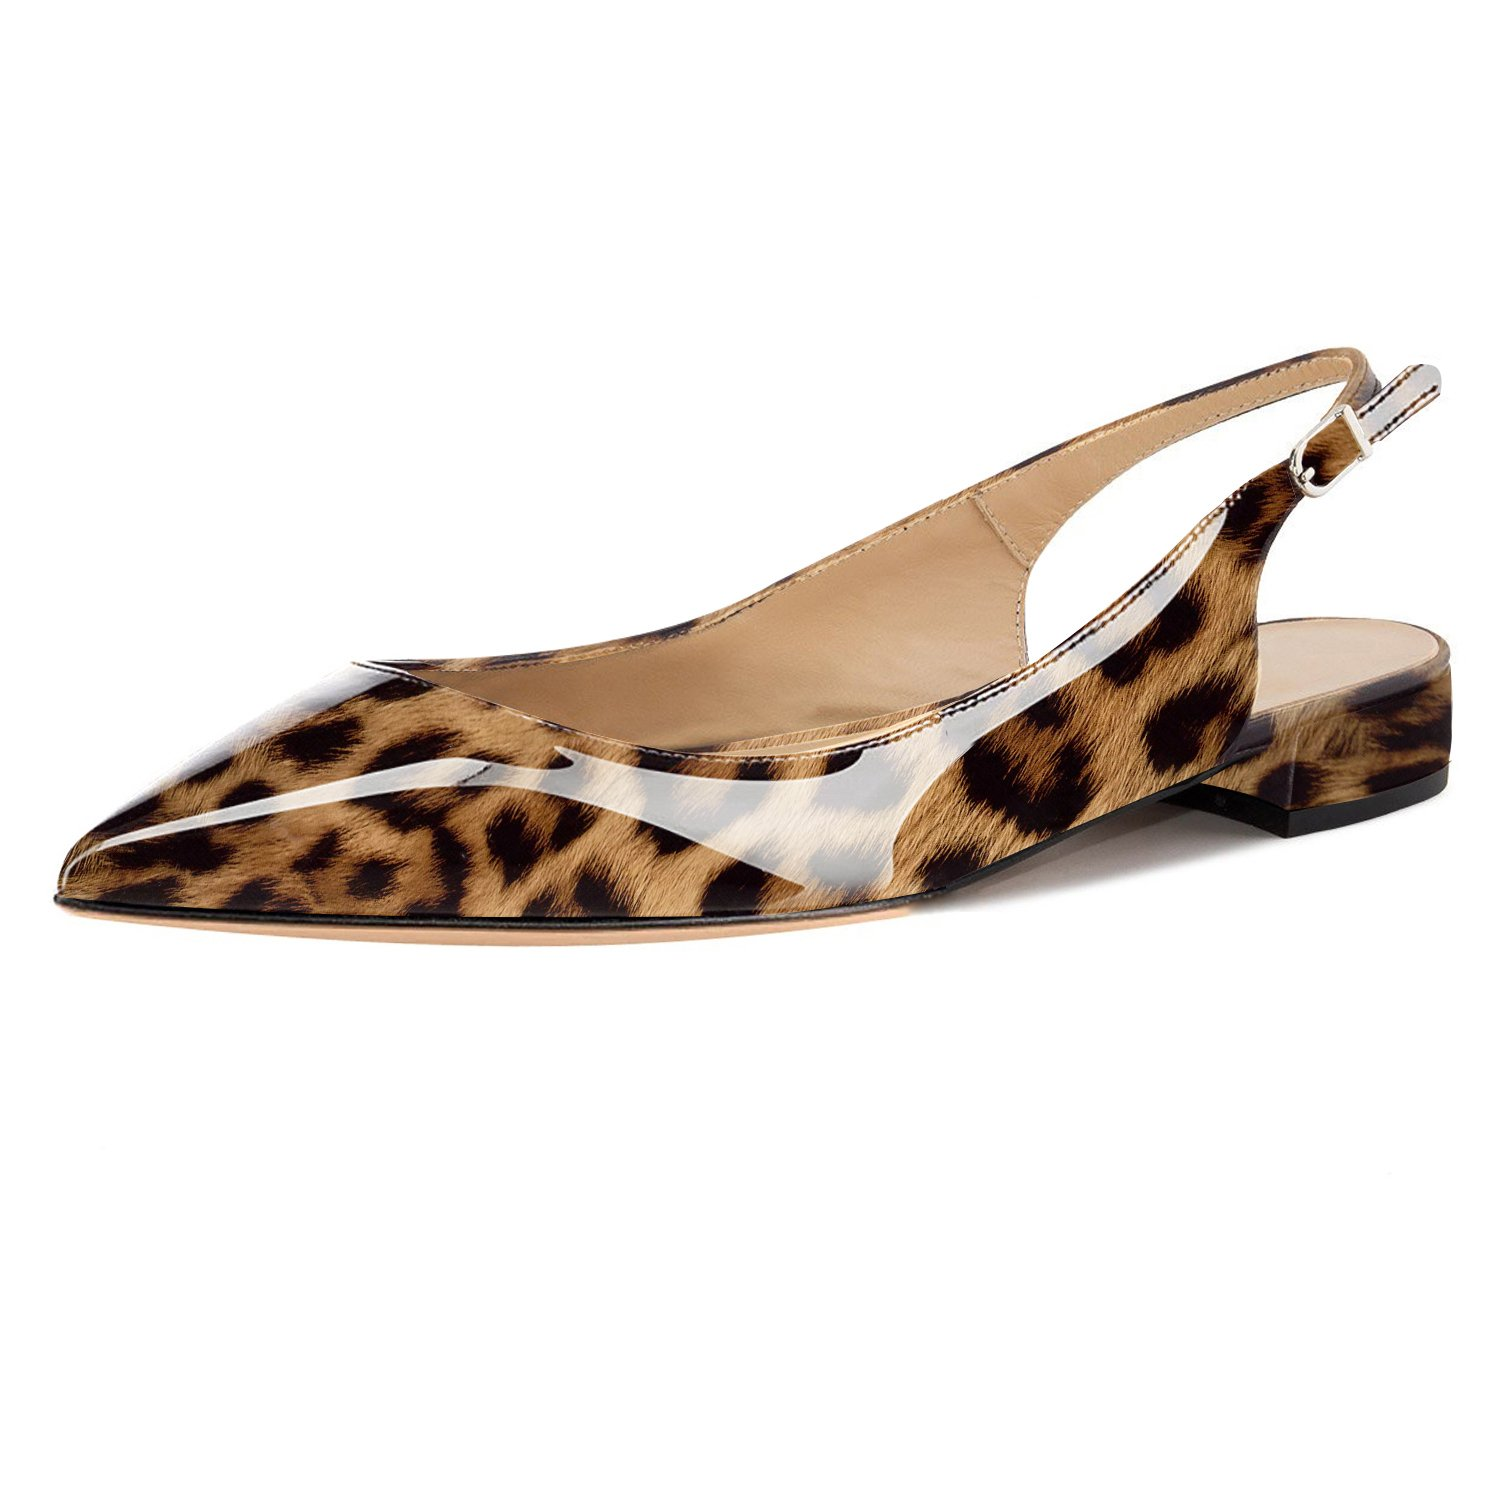 Eldof Women Low Heels Pumps | Pointed Toe Slingback Flat Pumps | 2cm Classic Elegante Court Shoes B07C7Y5CCF 10 B(M) US|Leopard Brown